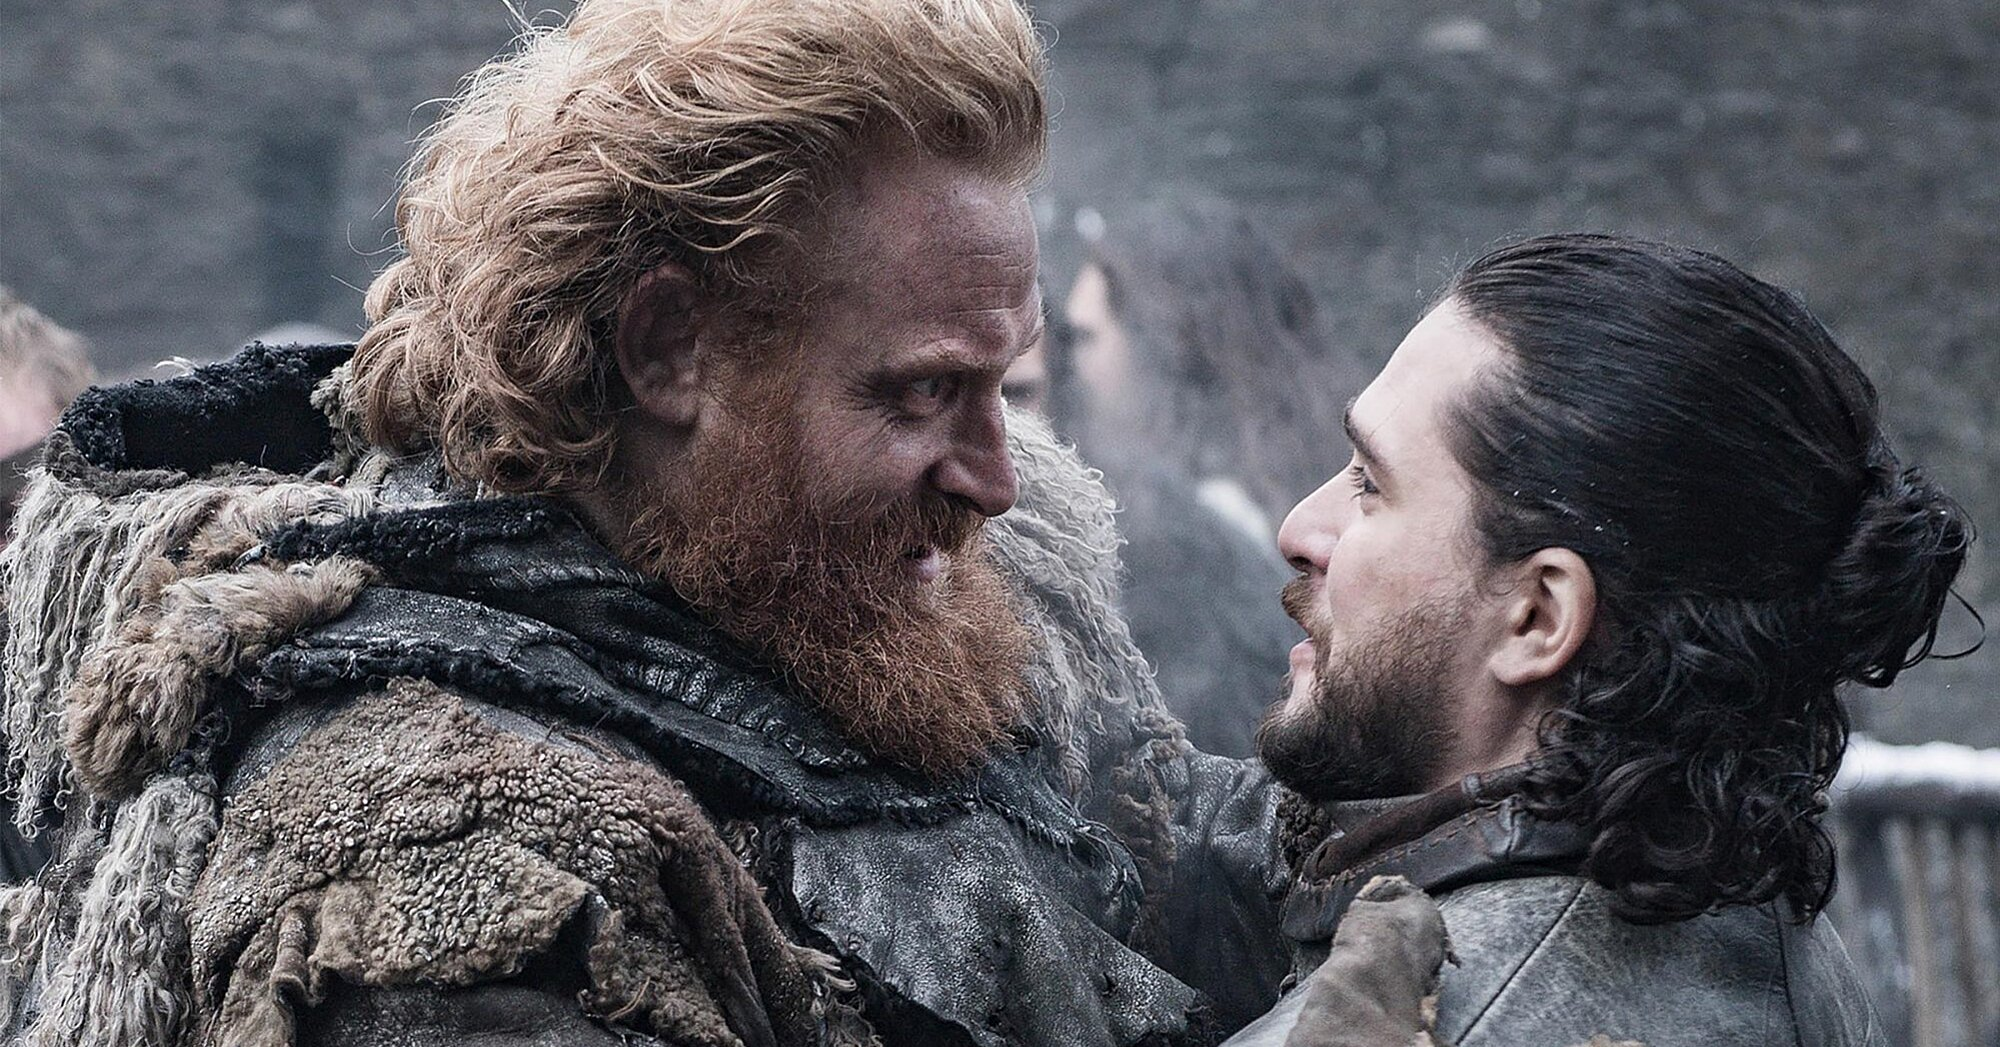 'Game of Thrones' star Kristofer Hivju knows what Jon Snow and Tormund are up to right now